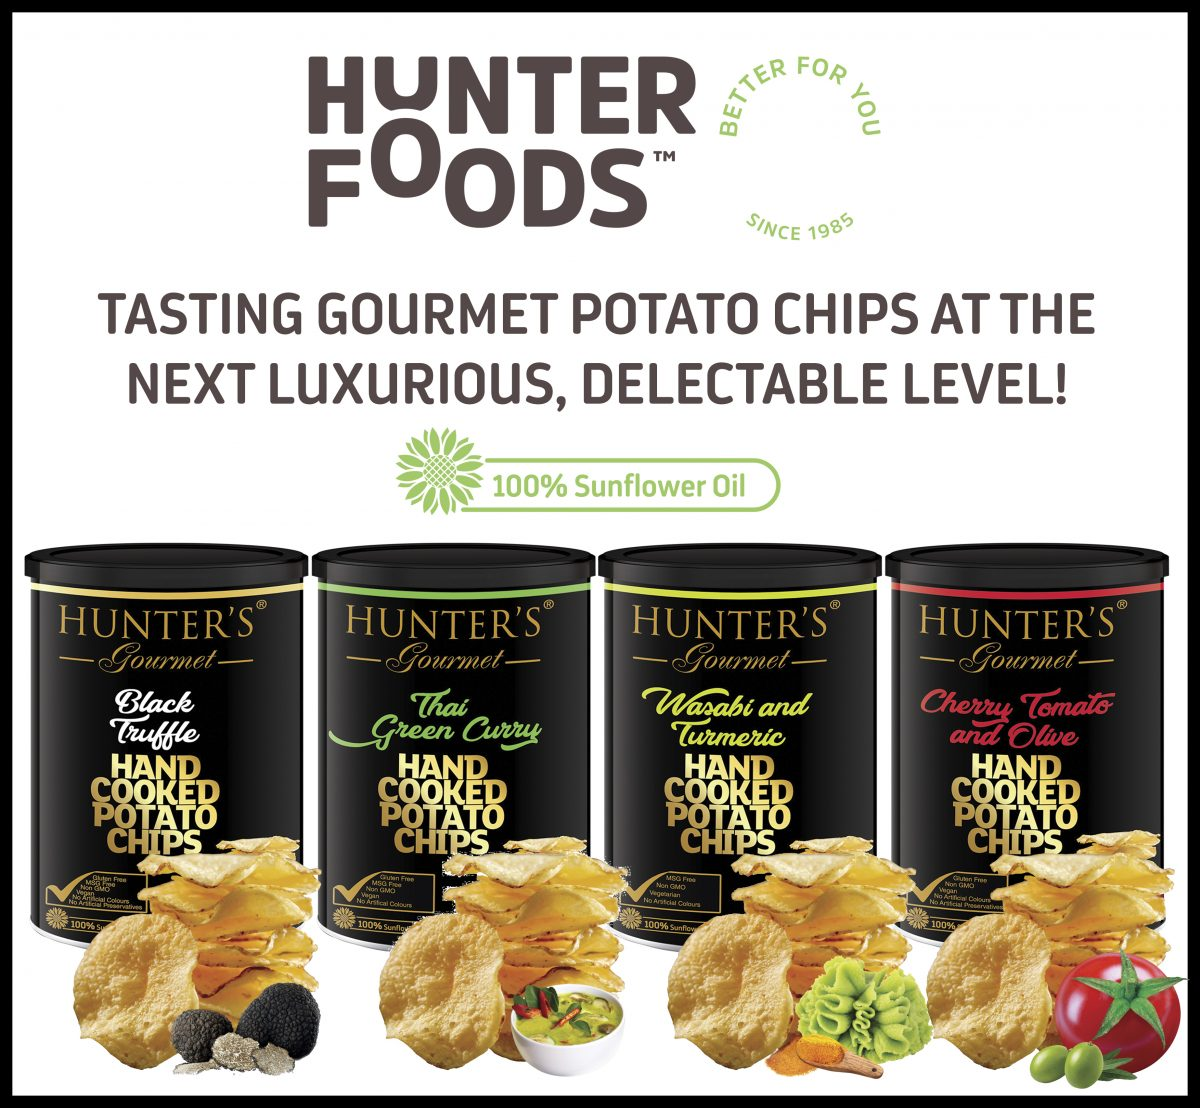 LAUNCH at Gulfood 2019: Hunter's Gourmet Hand Cooked Potato Chips, Gold Edition